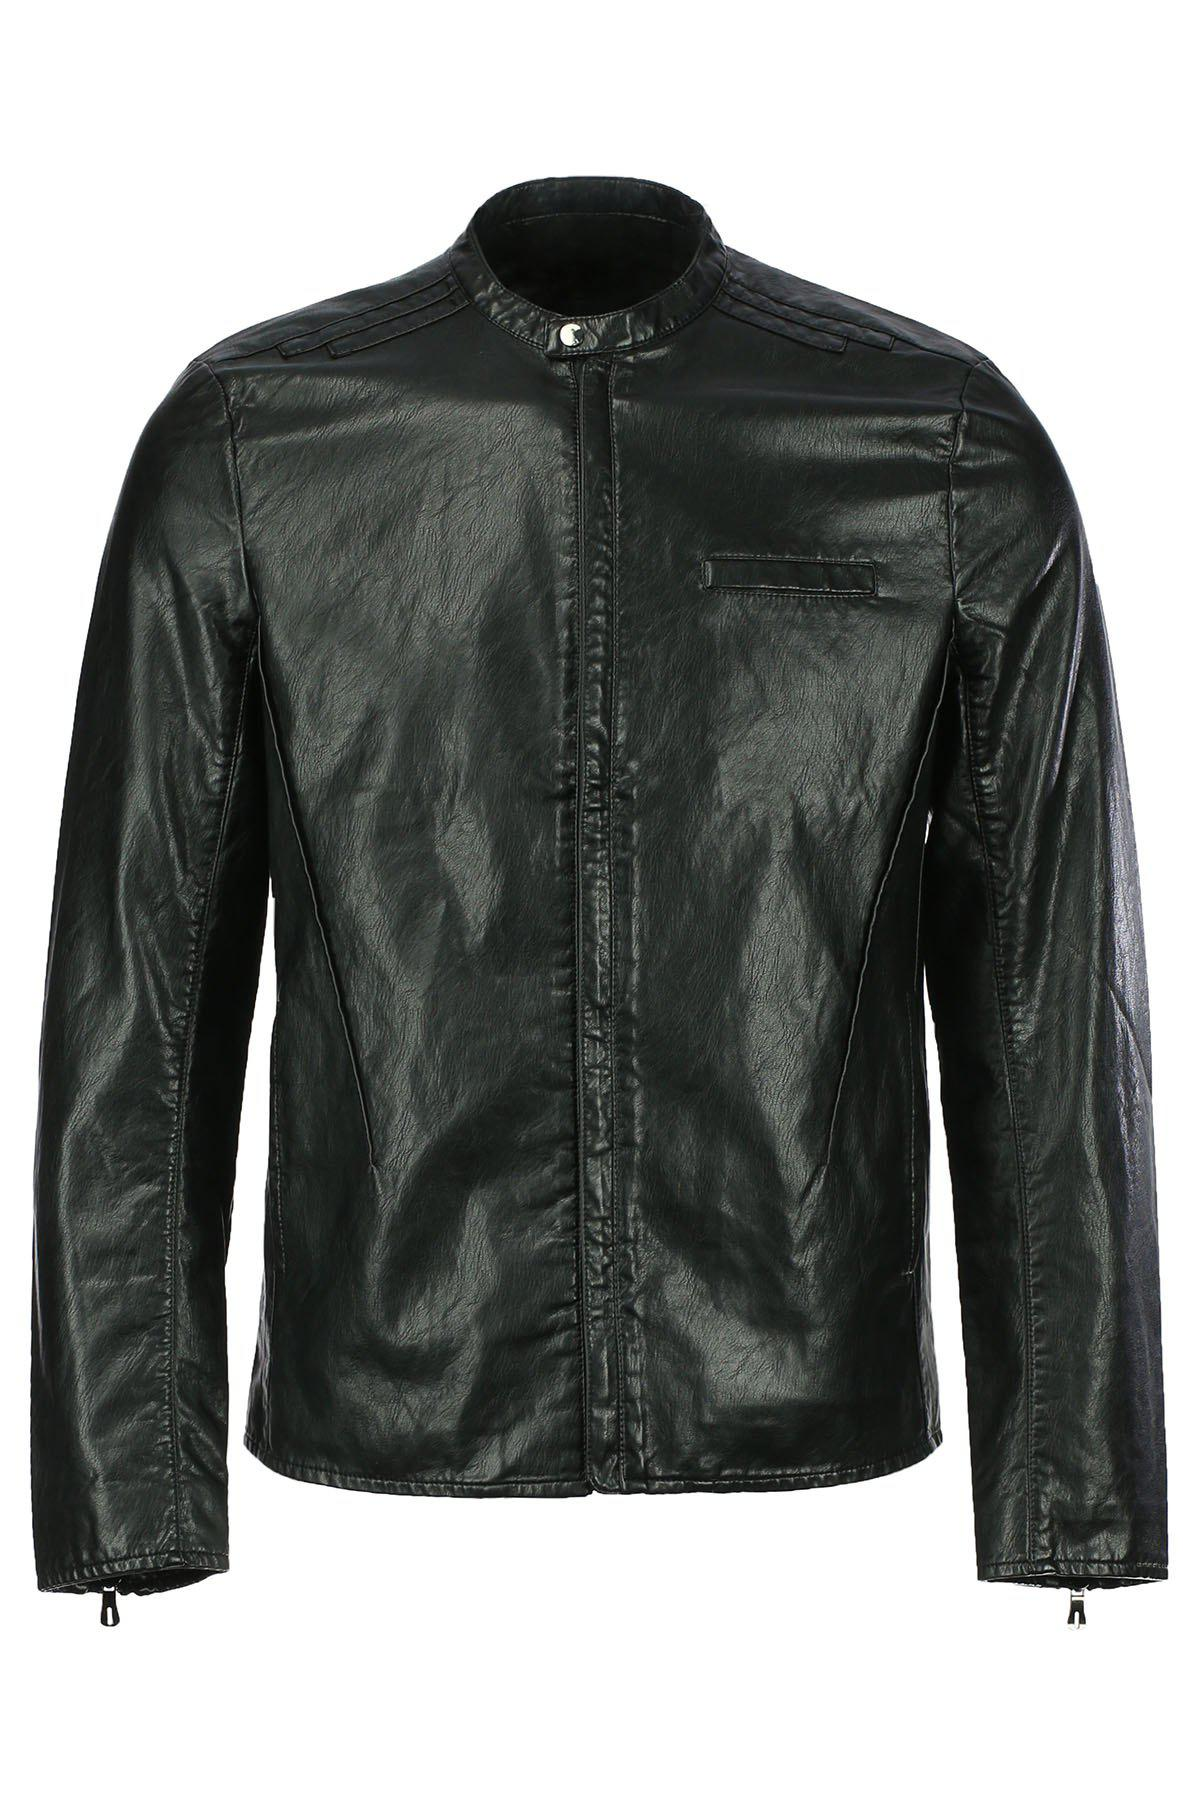 Vogue Stand Collar Zipper Cuffs Slimming Long Sleeves Men's PU Leather Jacket - BLACK L